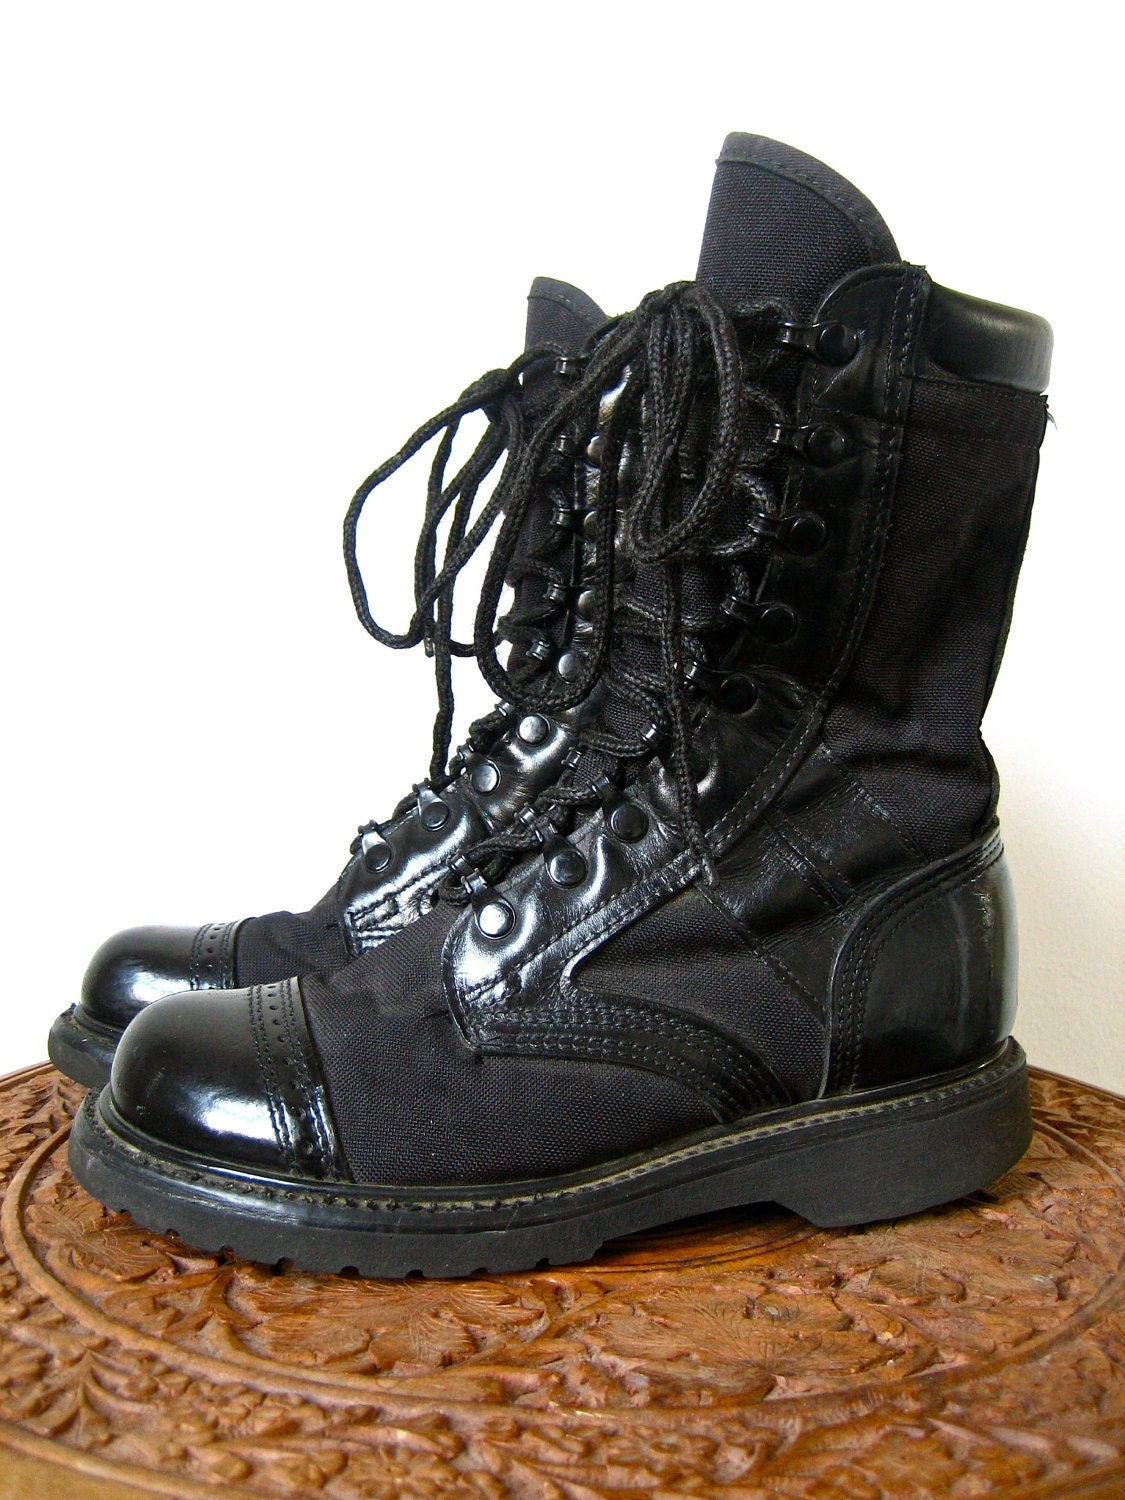 Black Military Boots Vintage 1960s Corcoran Military Jump